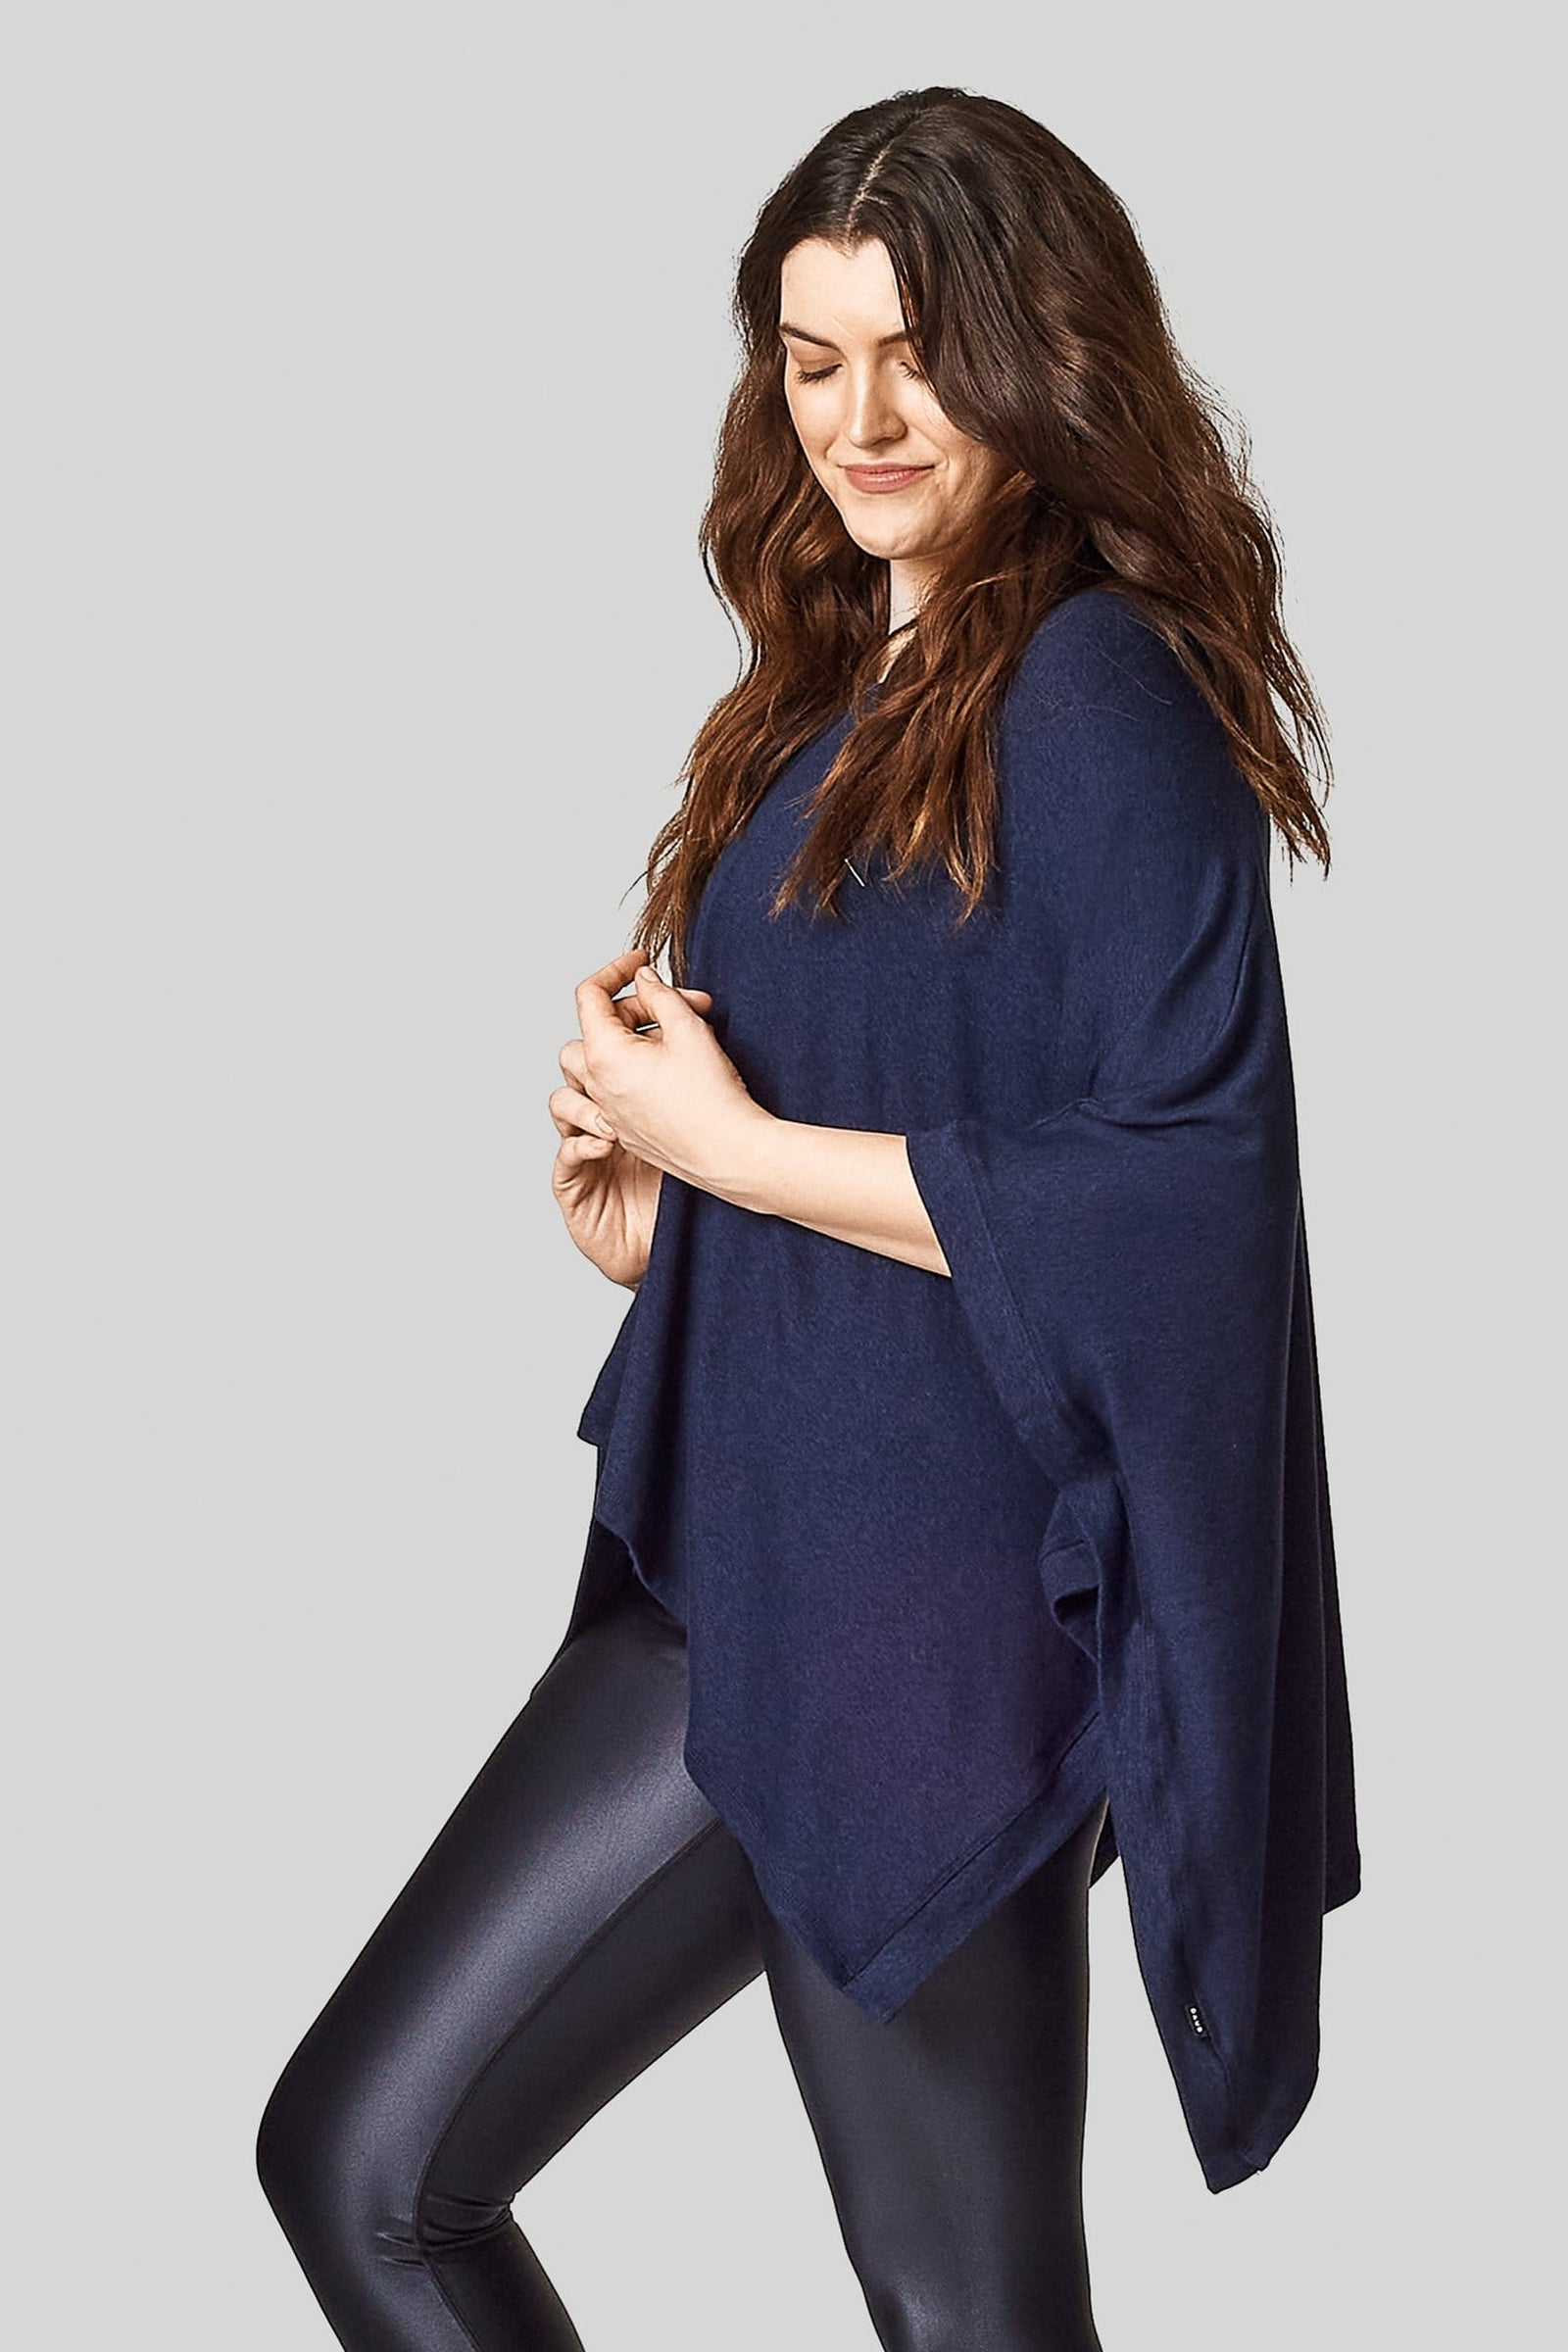 A side view of a caucasian brunette wearing a navy blue poncho.